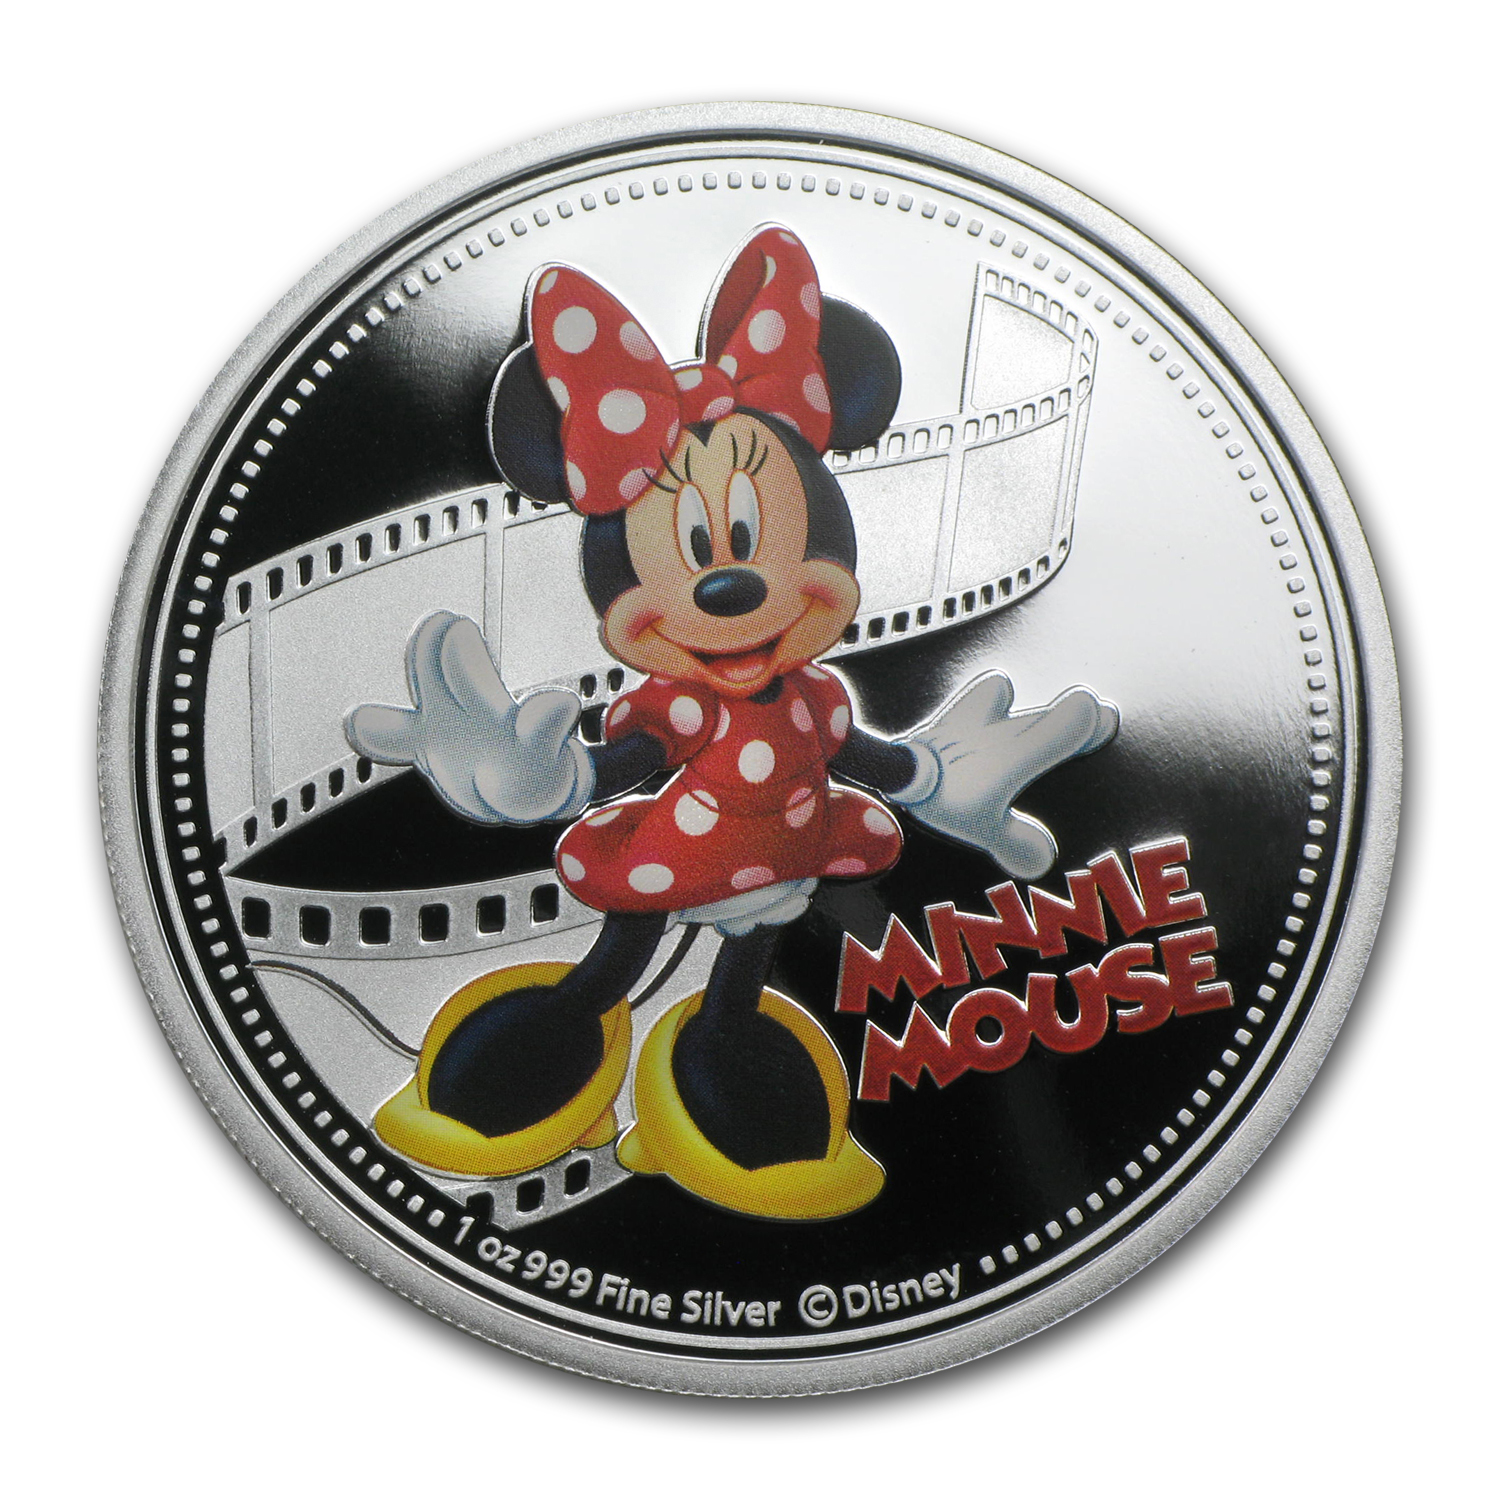 2014 1 oz Silver $2 Niue Disney Minnie Mouse (Colorized)